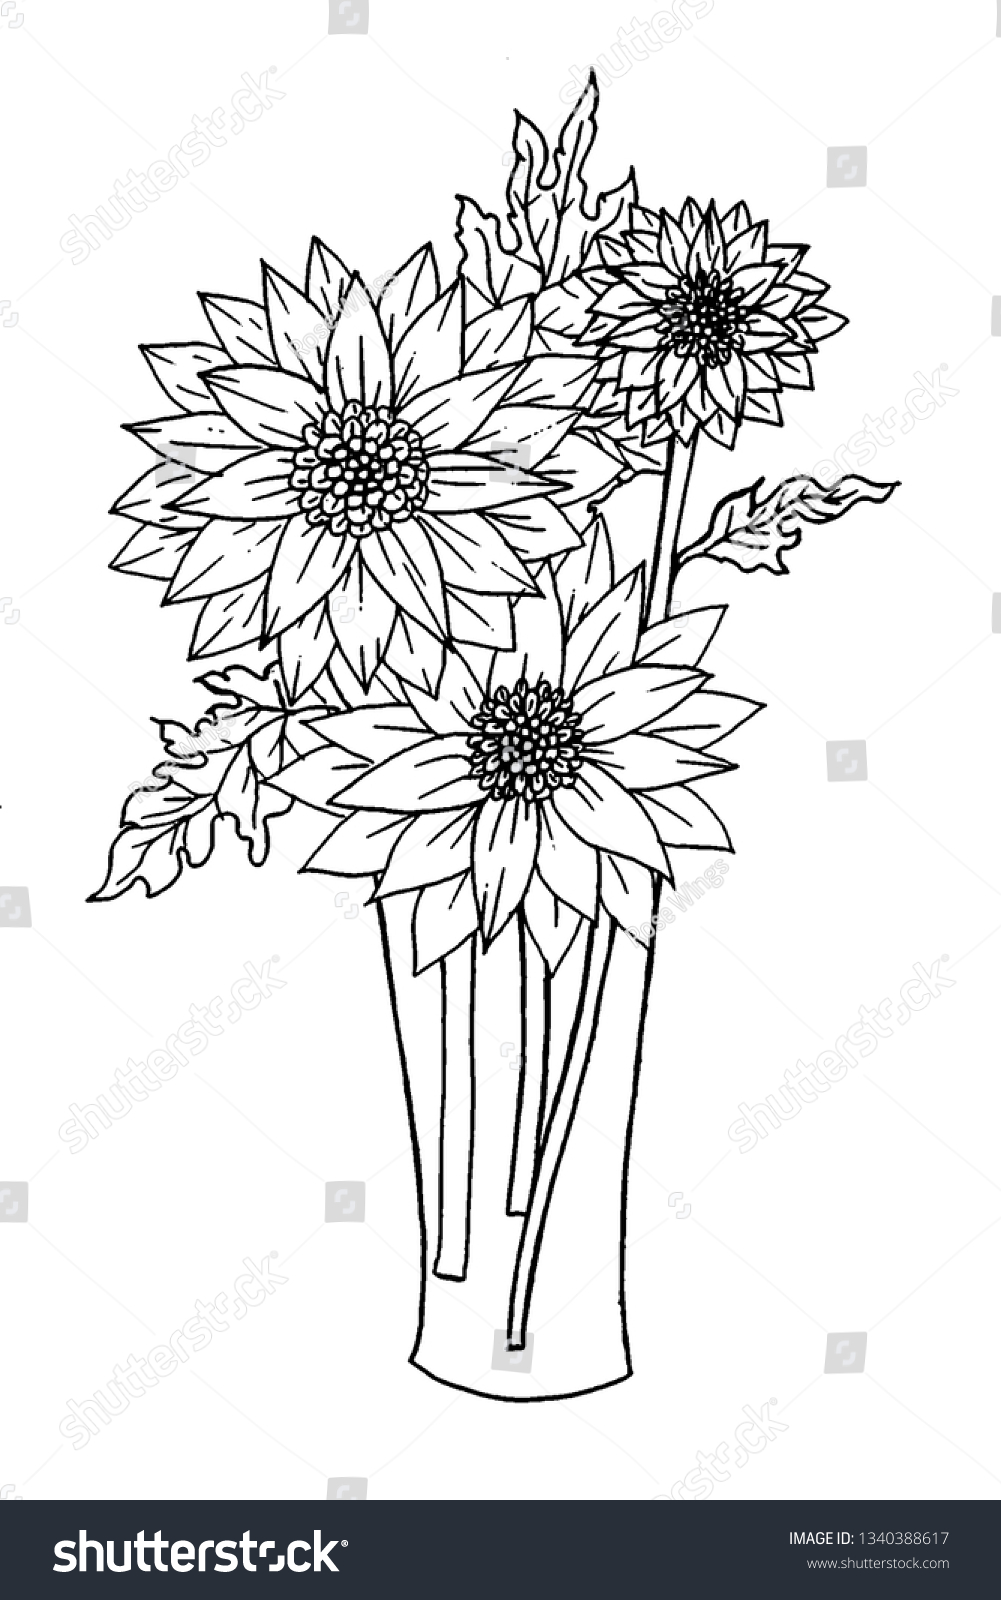 - Page Coloring Book Flowers Vase Doodles Stock Illustration 1340388617